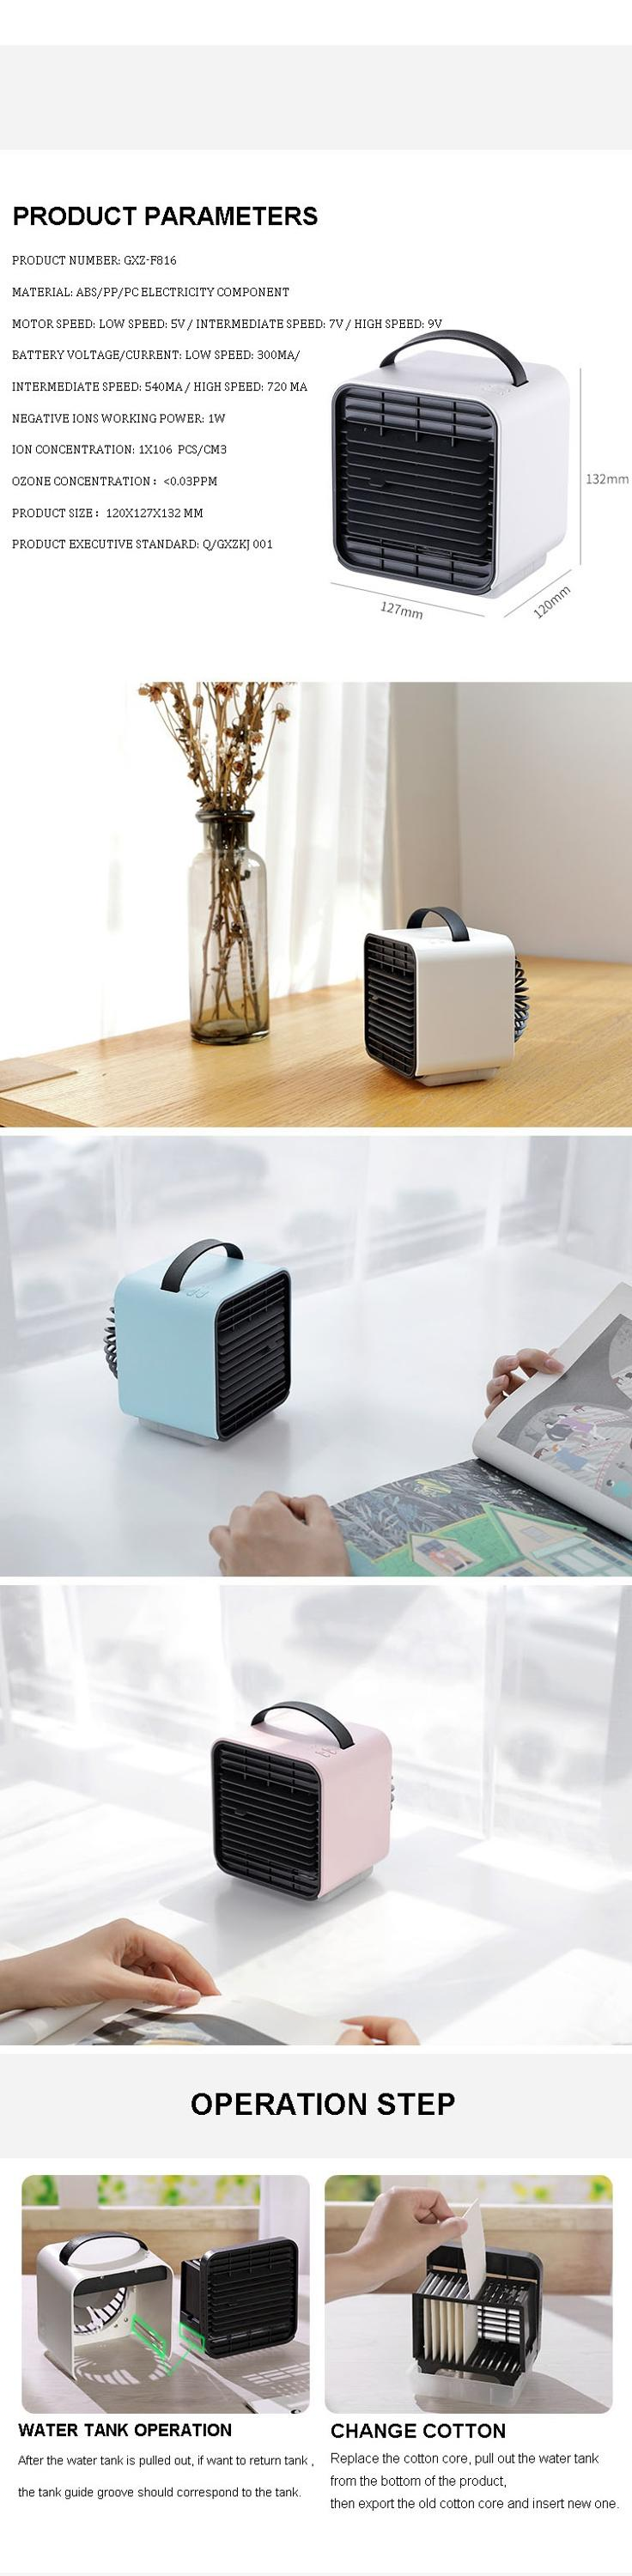 Amazon Best Price Air Cooler 3 Speed Adjustable USb Mini Air Conditioner Portable Air Cooler Fan with Led Night Light